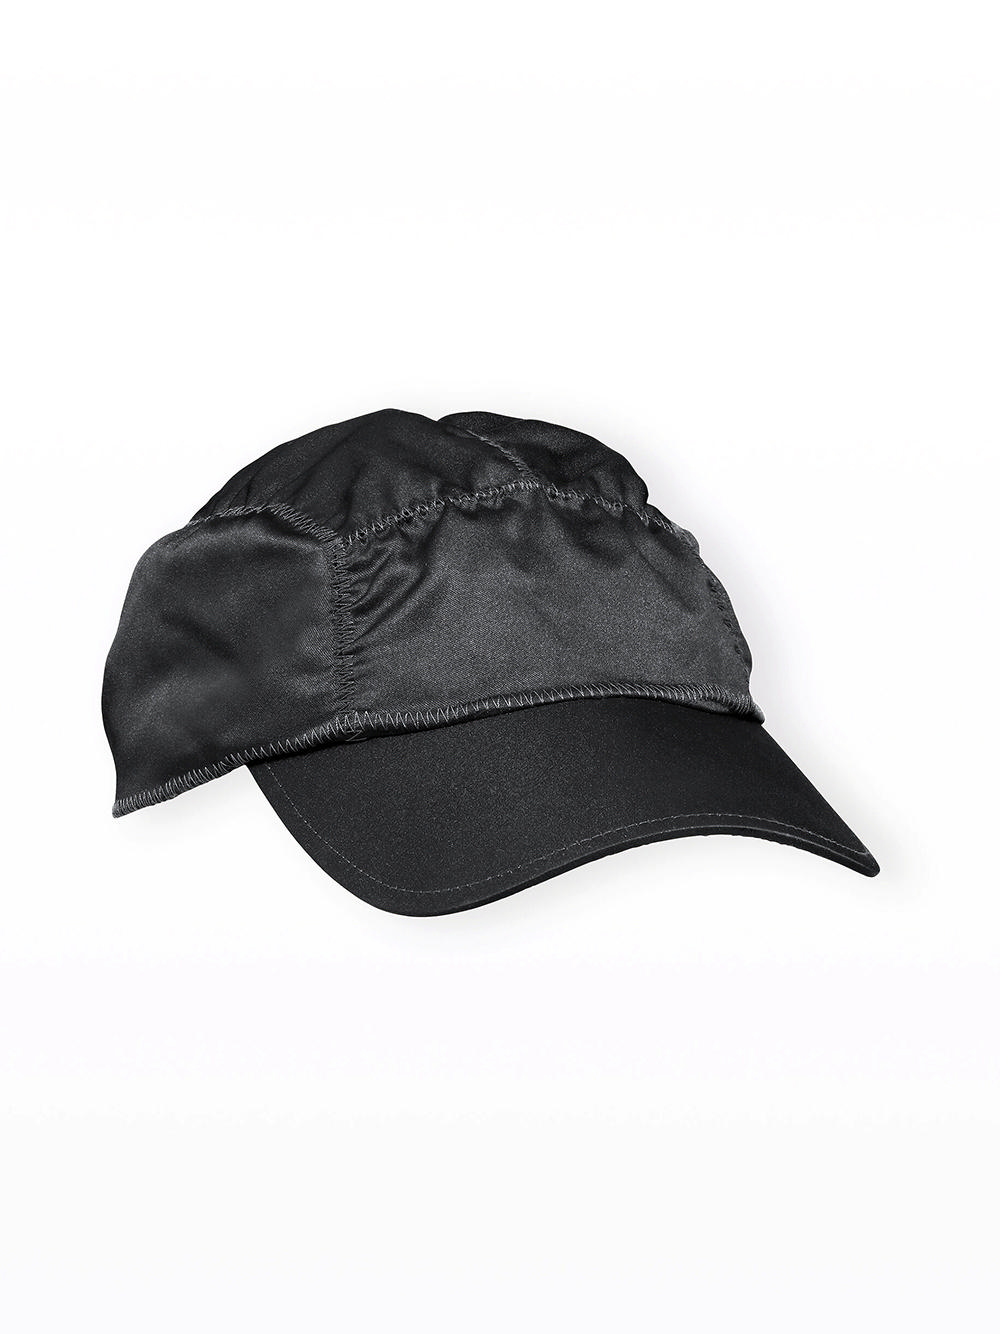 Satin Baseball Cap Item # A3328